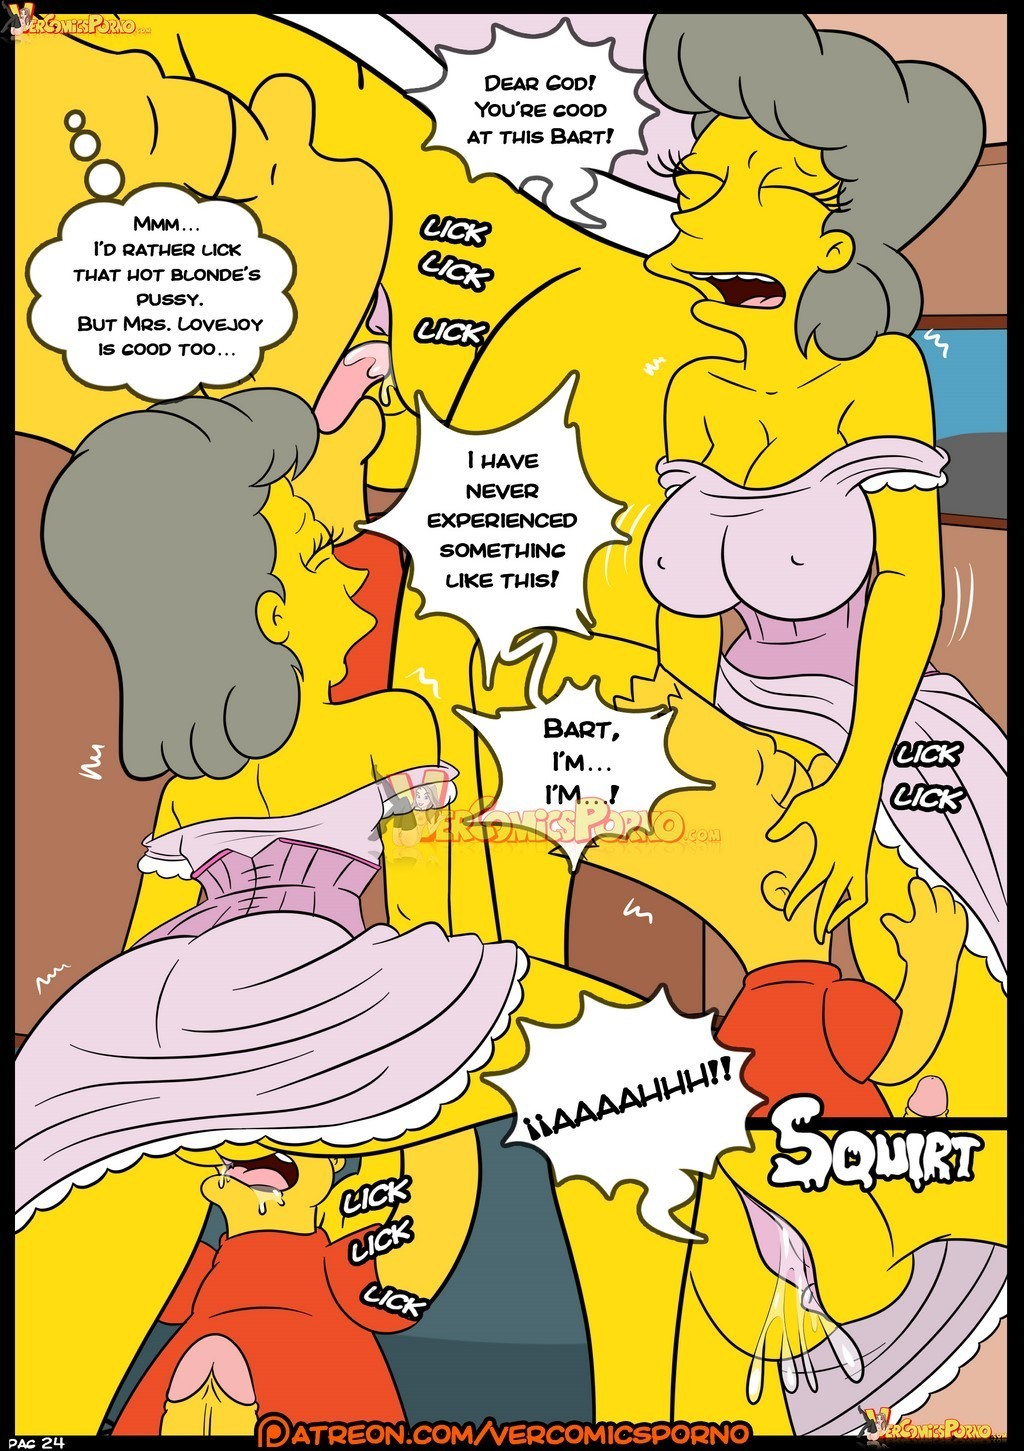 25 - The Simpsons. Part 8.